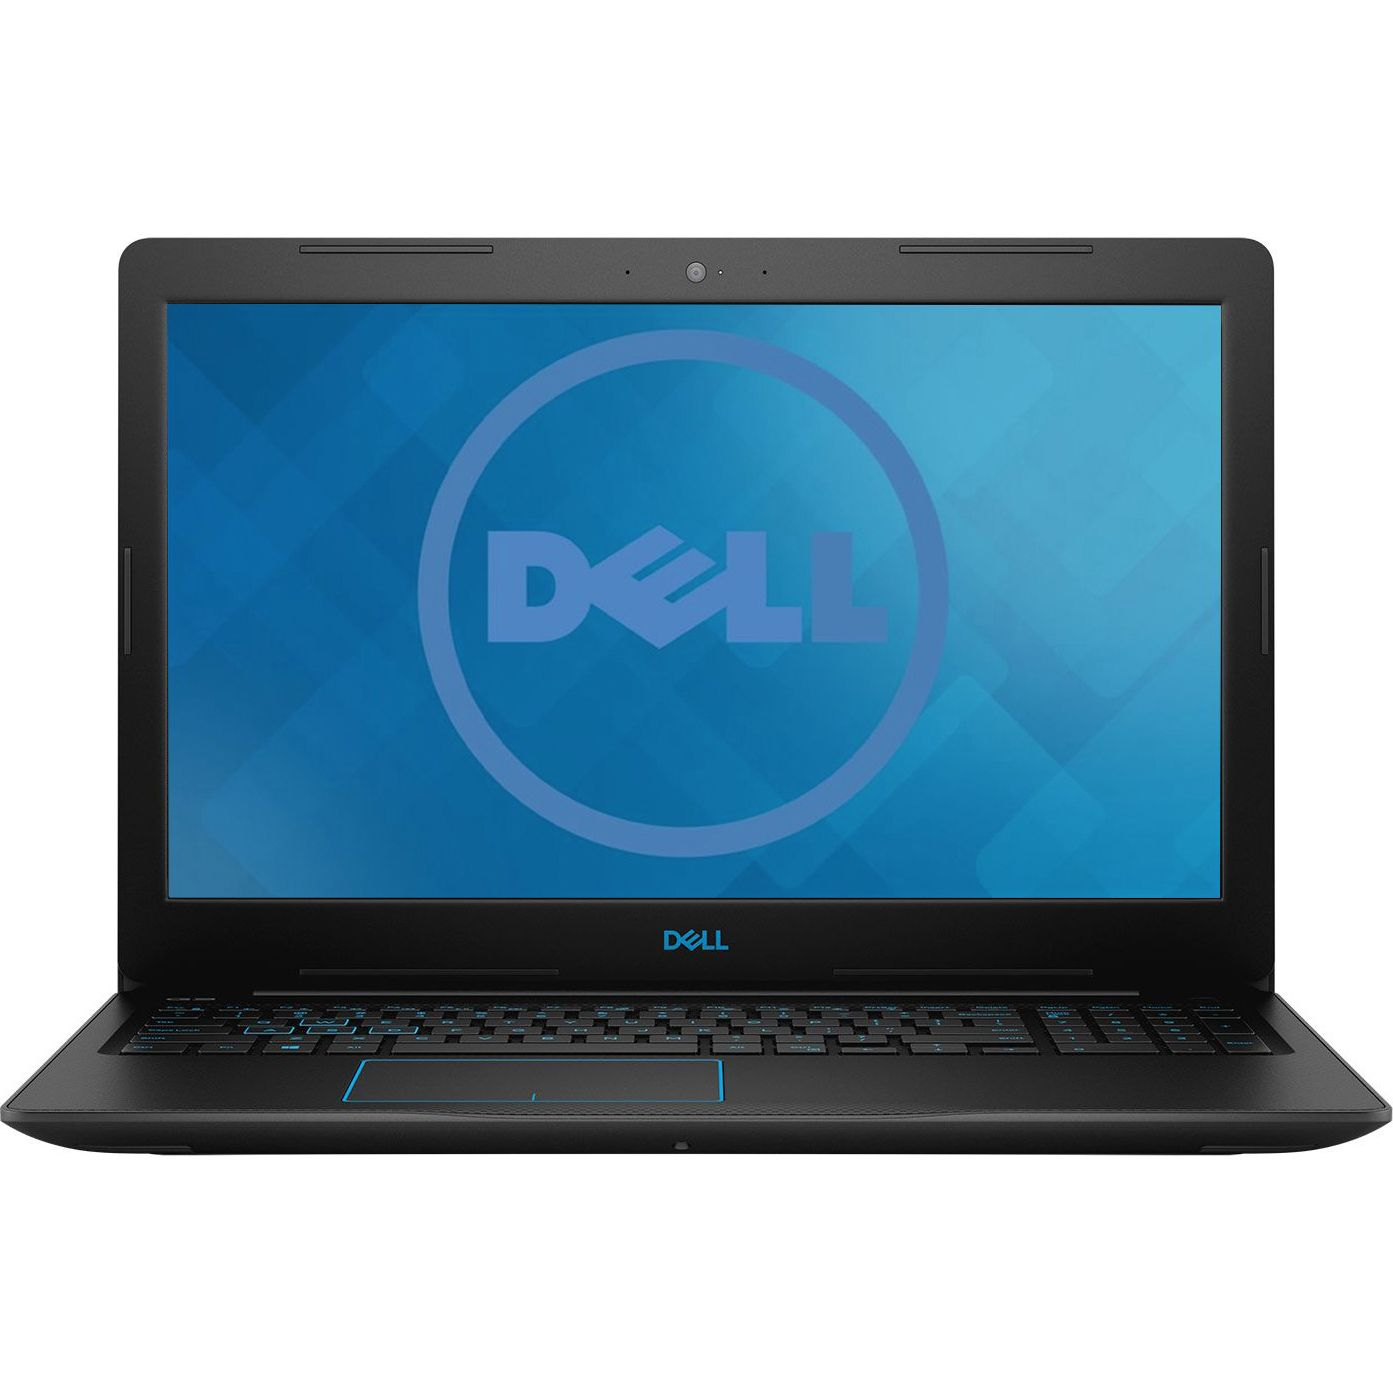 Notebook Dell G3 3579 15.6 Full HD Intel Core i7-8750H GTX 1050 Ti-4GB RAM 16GB HDD 1TB + SSD 256GB Windows 10 Home